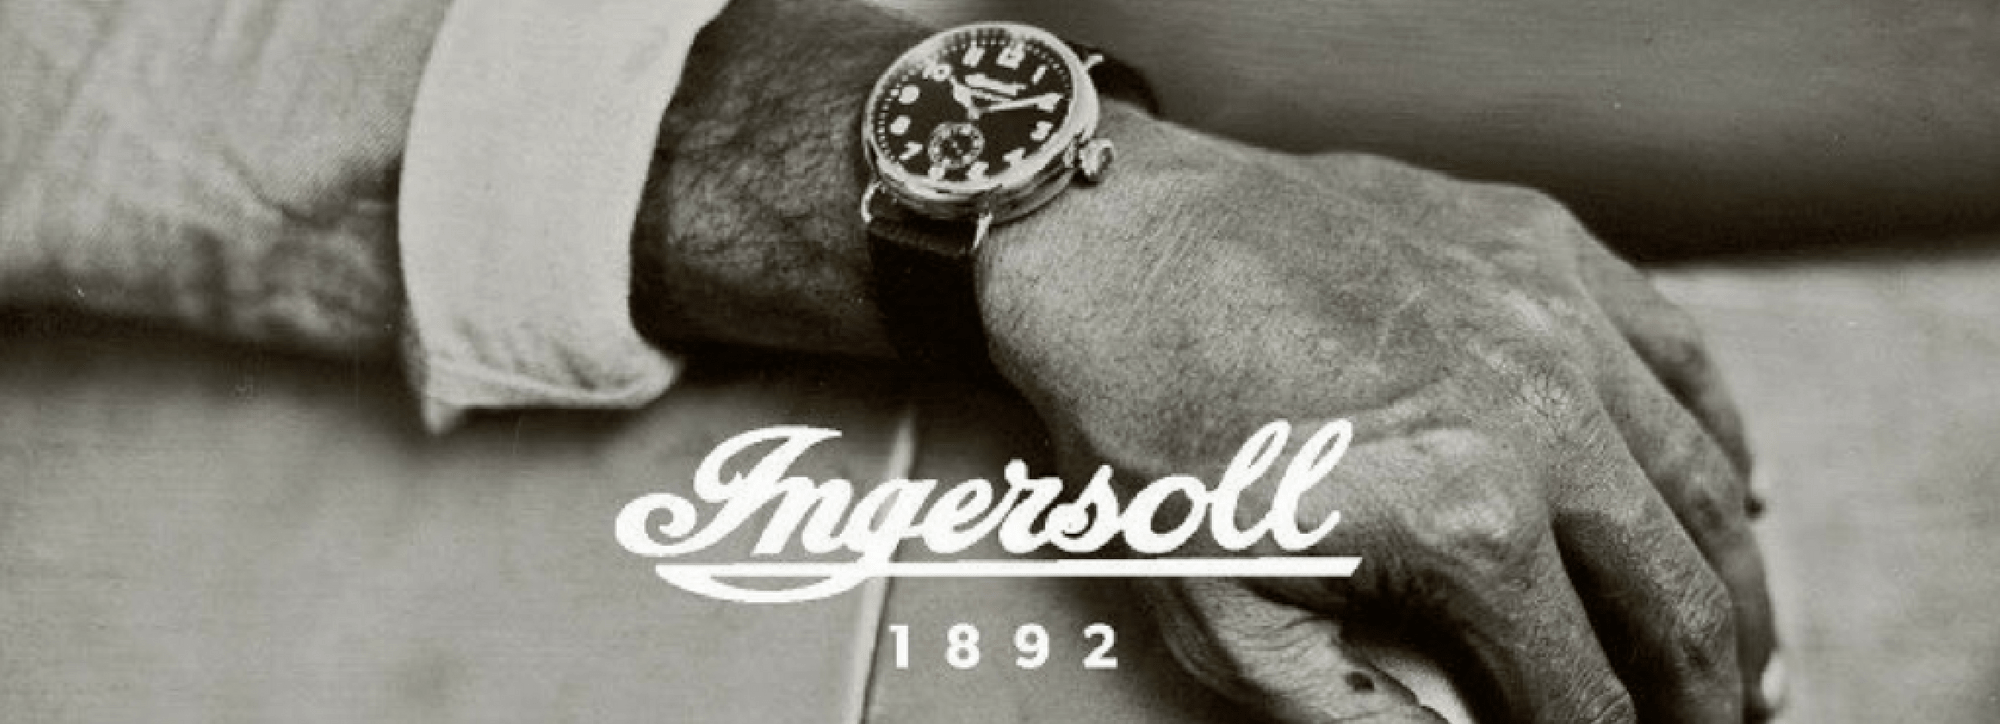 Spotlight: Ingersoll Watches